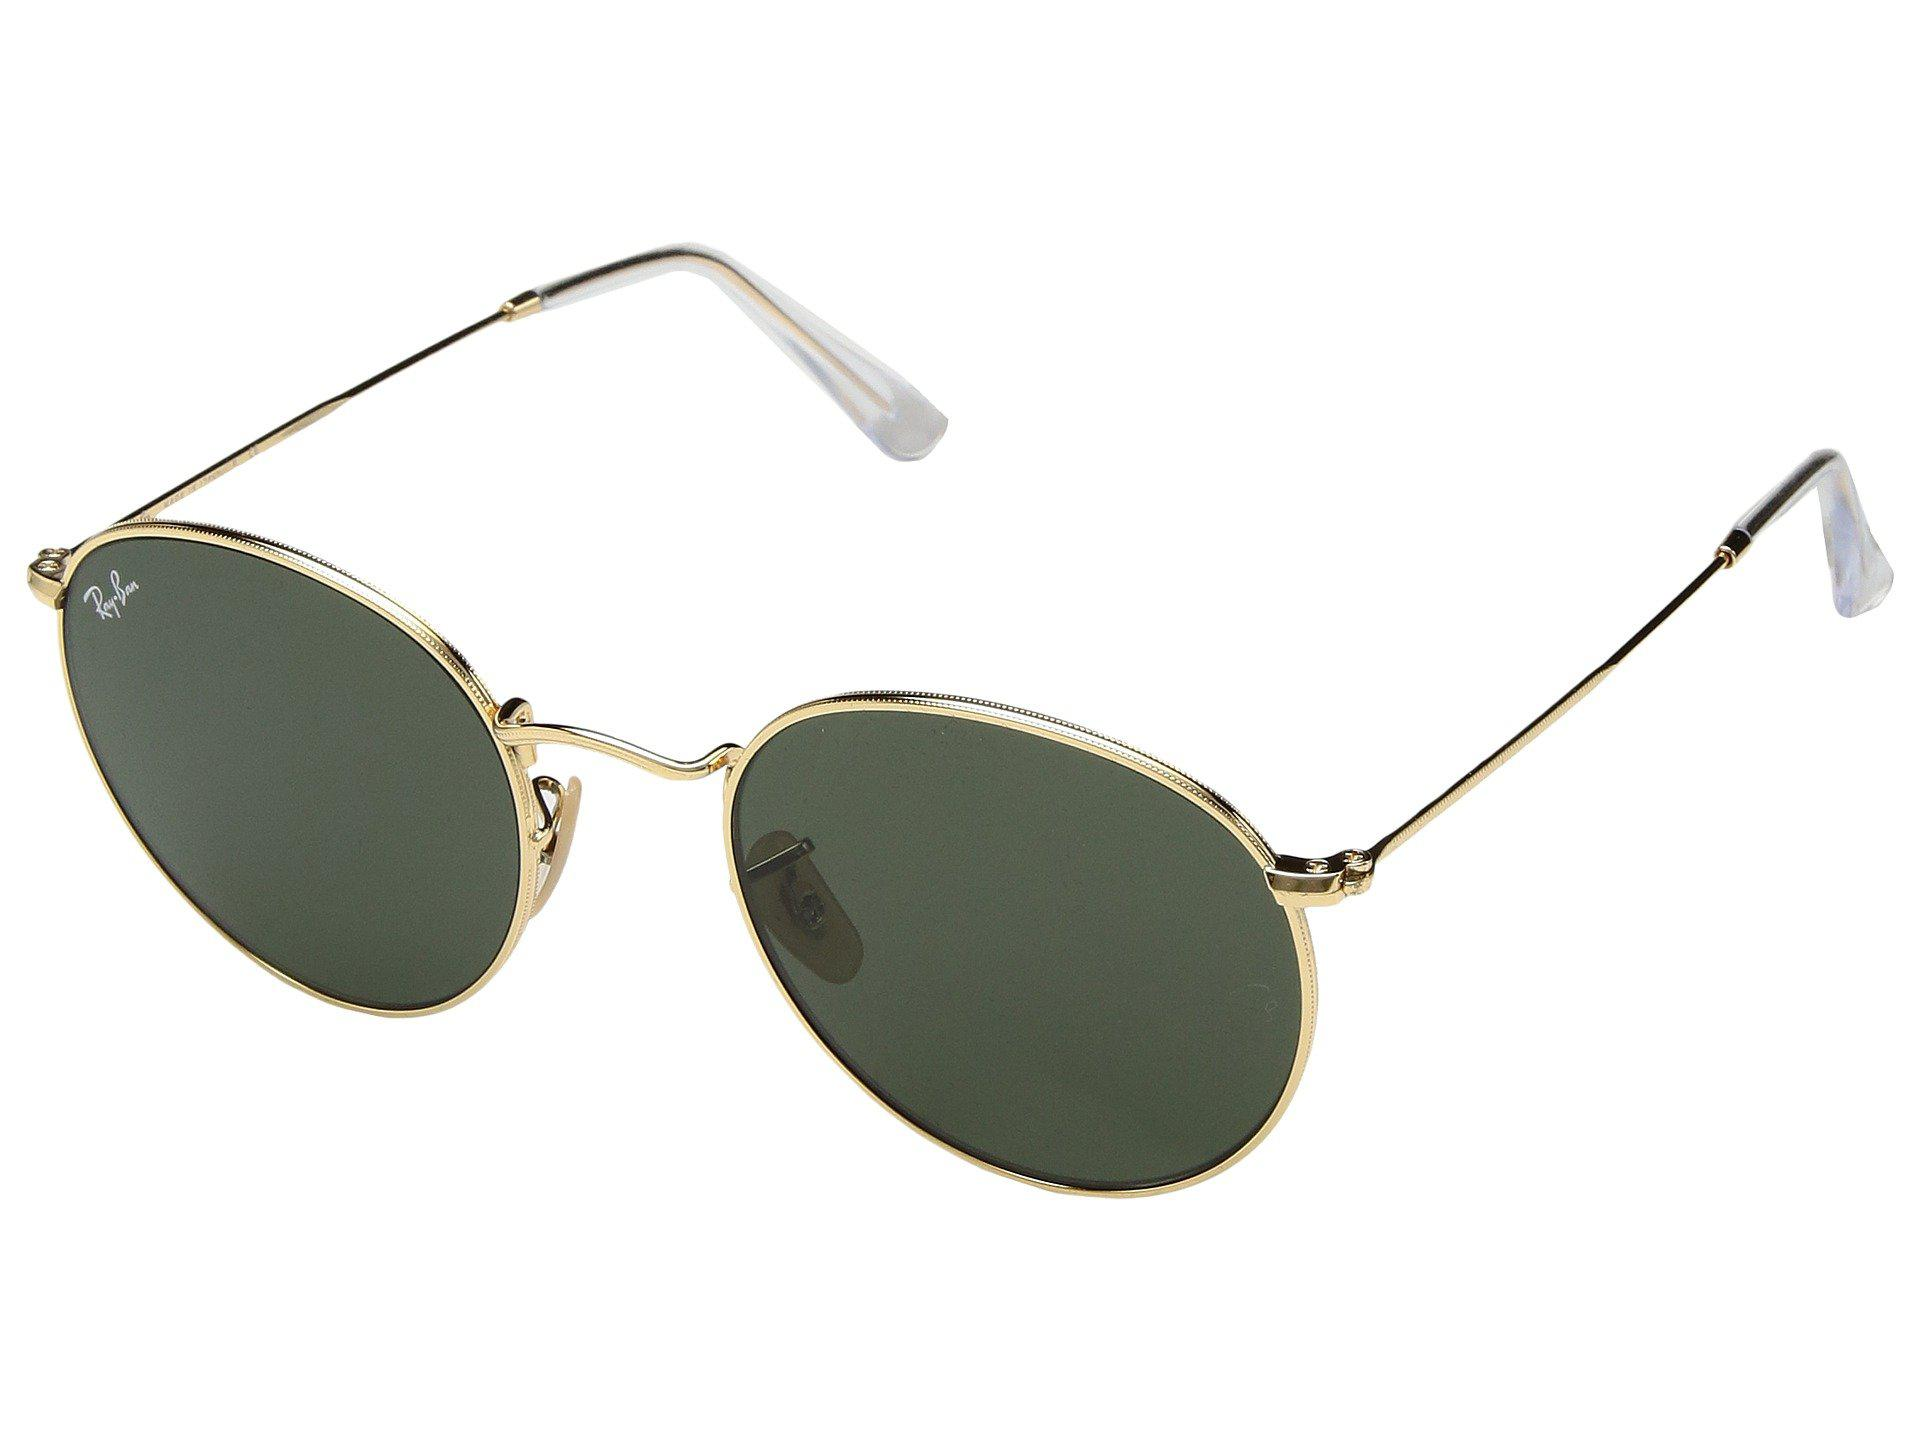 c0384ecf04 ... discount code for fashion ray ban rb3016 clubmaster sunglasses mock tortoise  arista frame stella holiday presents